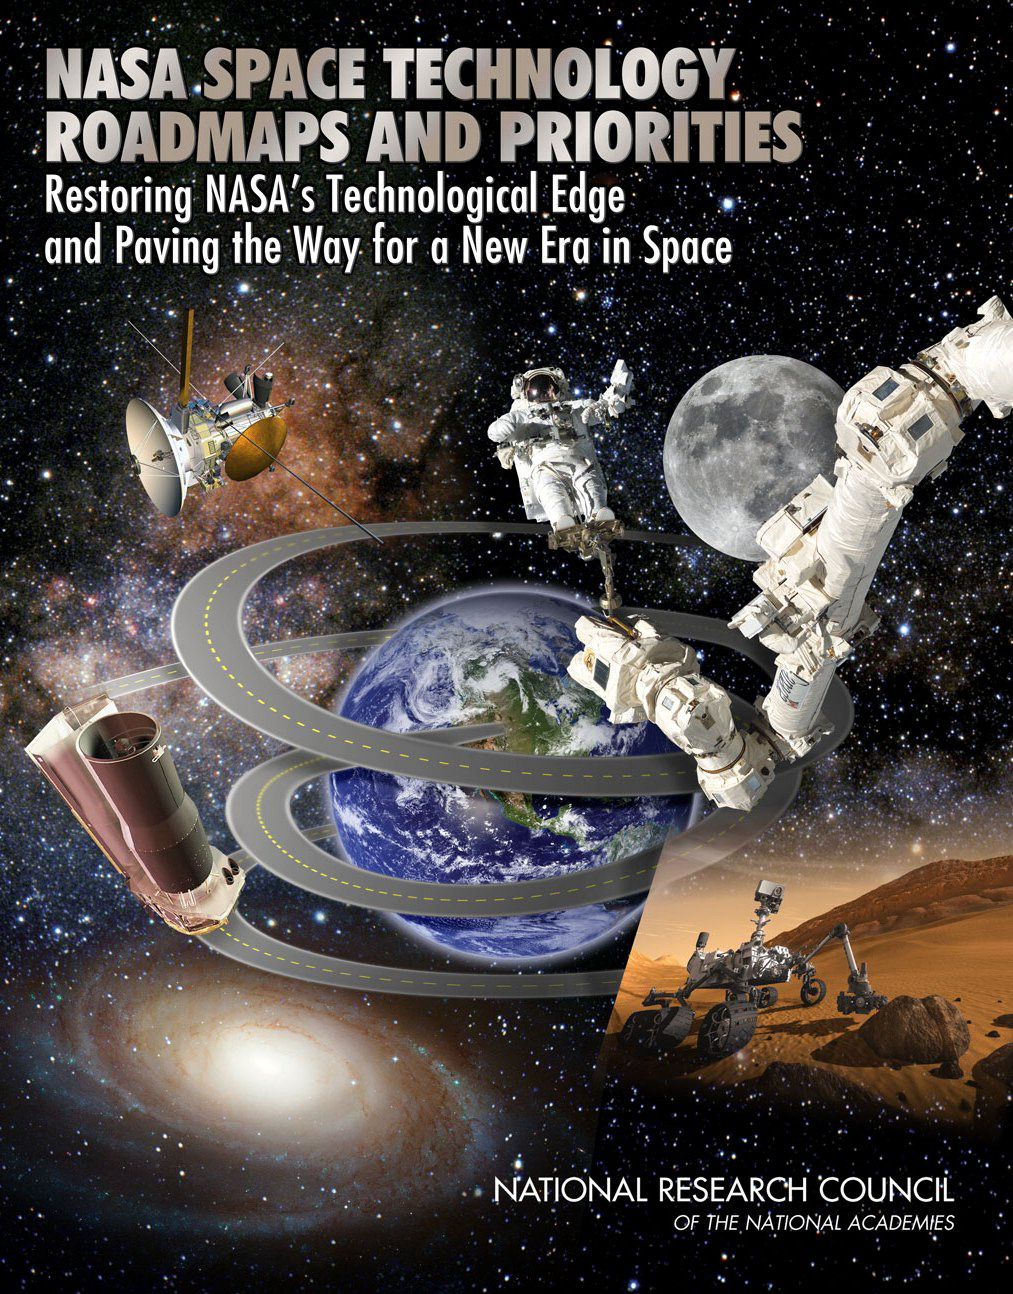 2012 Roadmaps cover